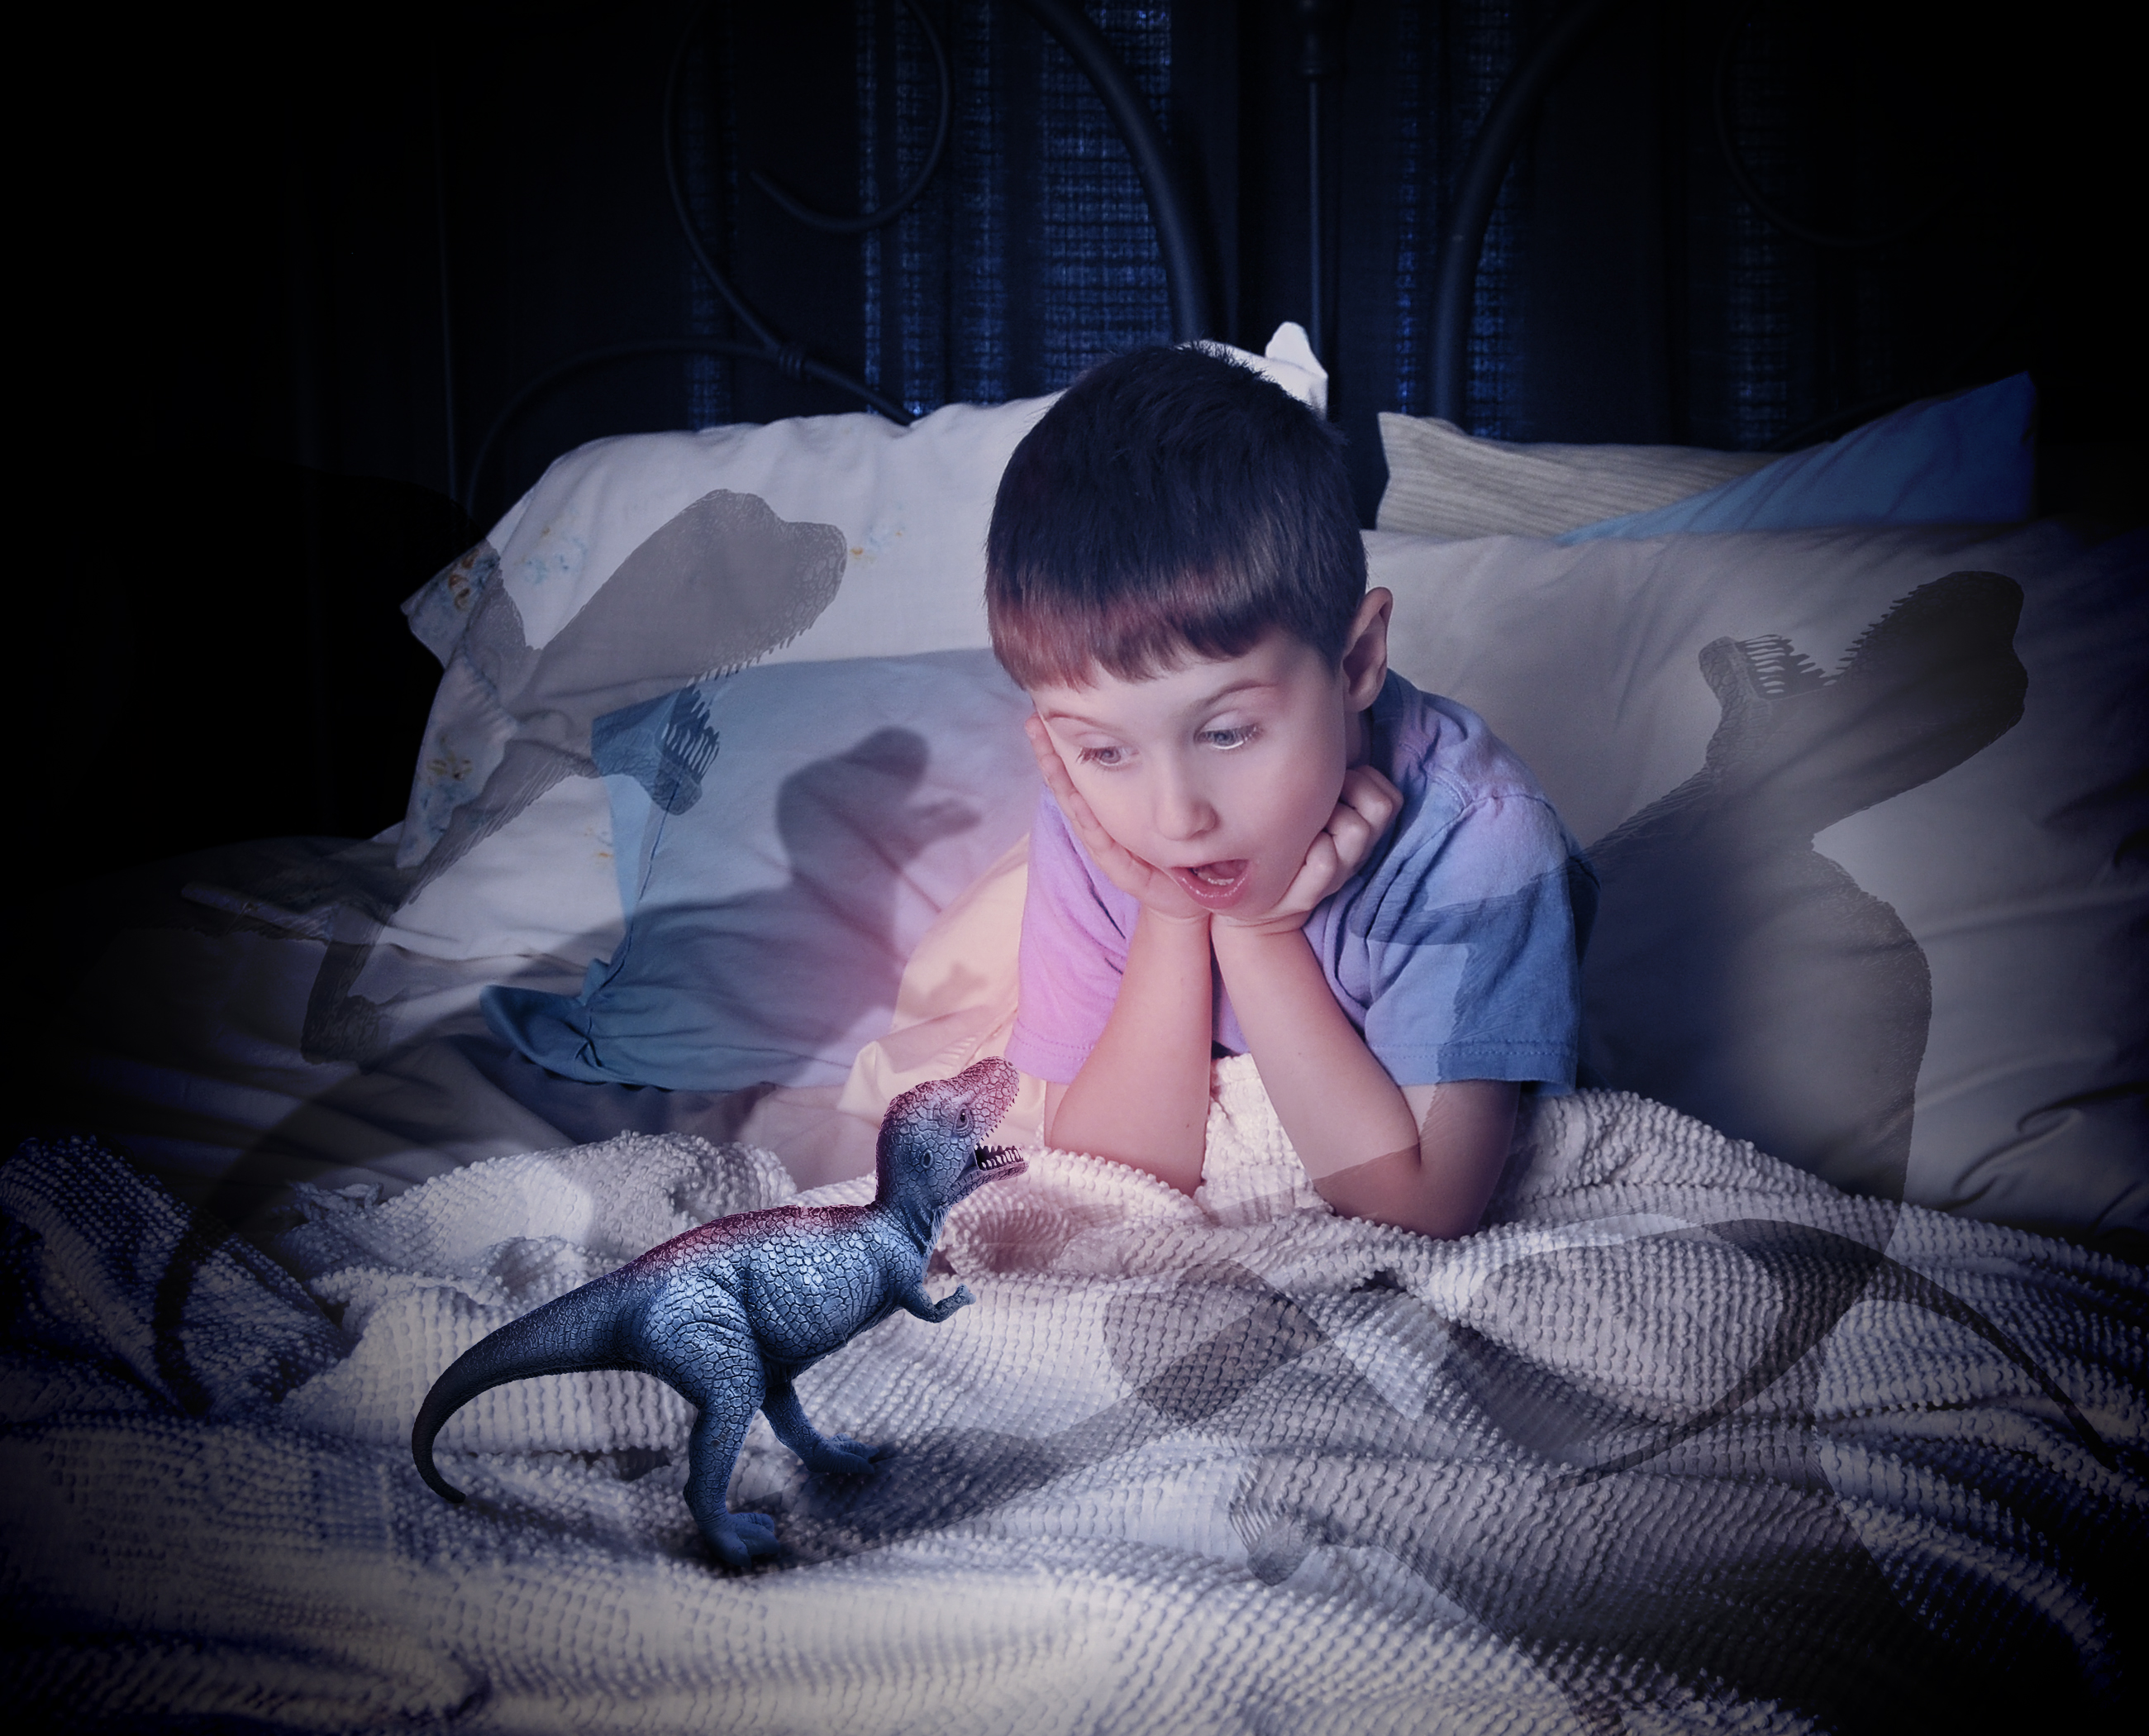 A little boy is looking at a t-red dinosaur toy on his bed that is scary with shadows for a bedtime fear concept.